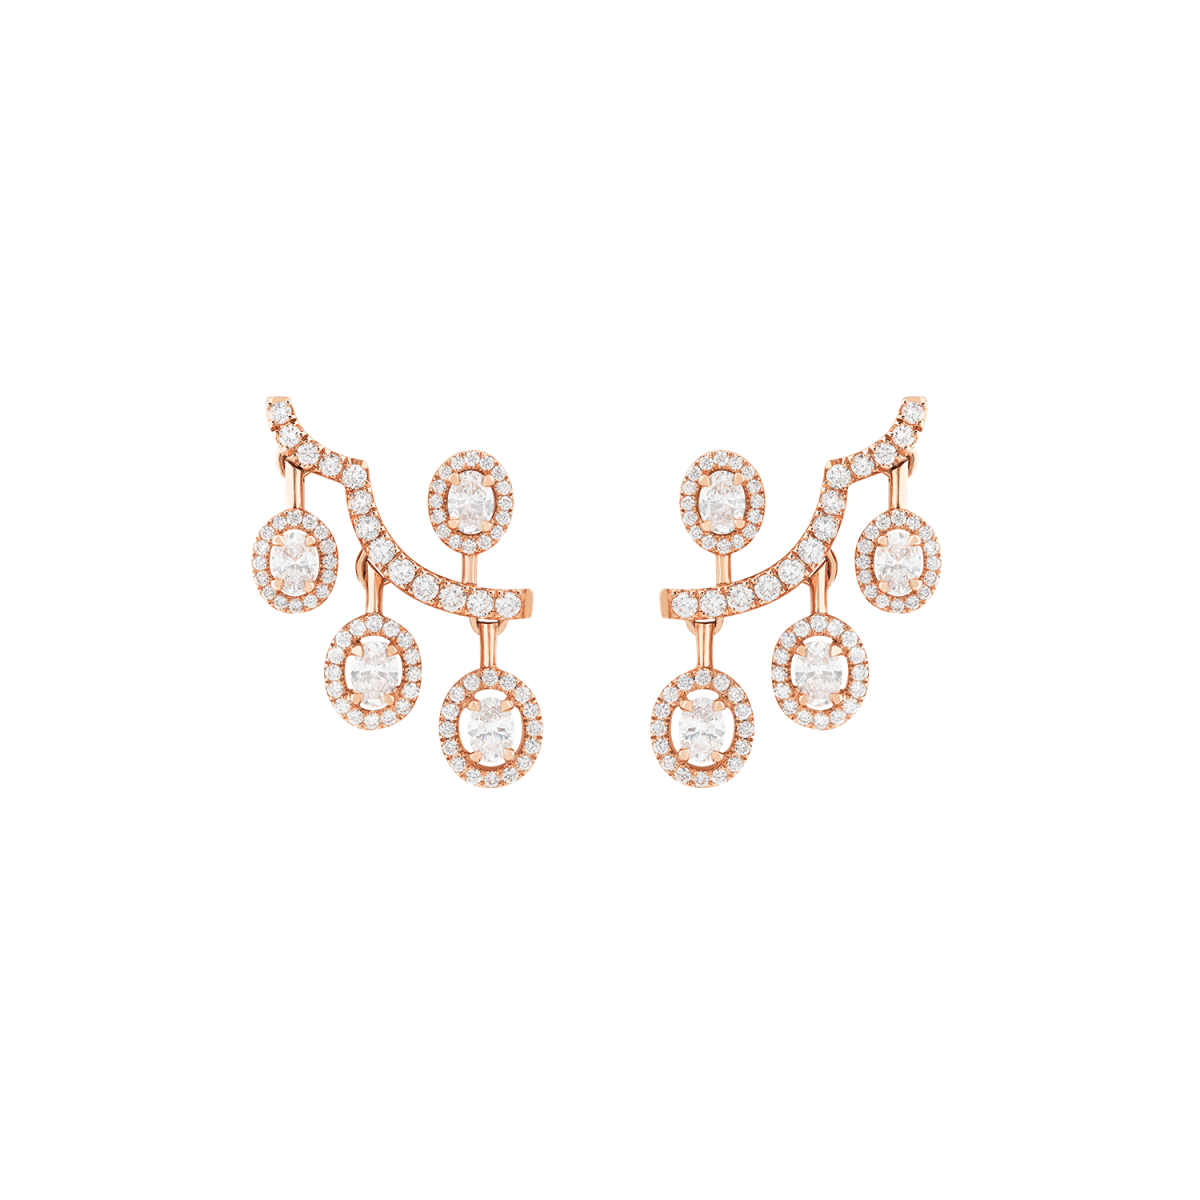 ariana rose gold earrings with diamonds